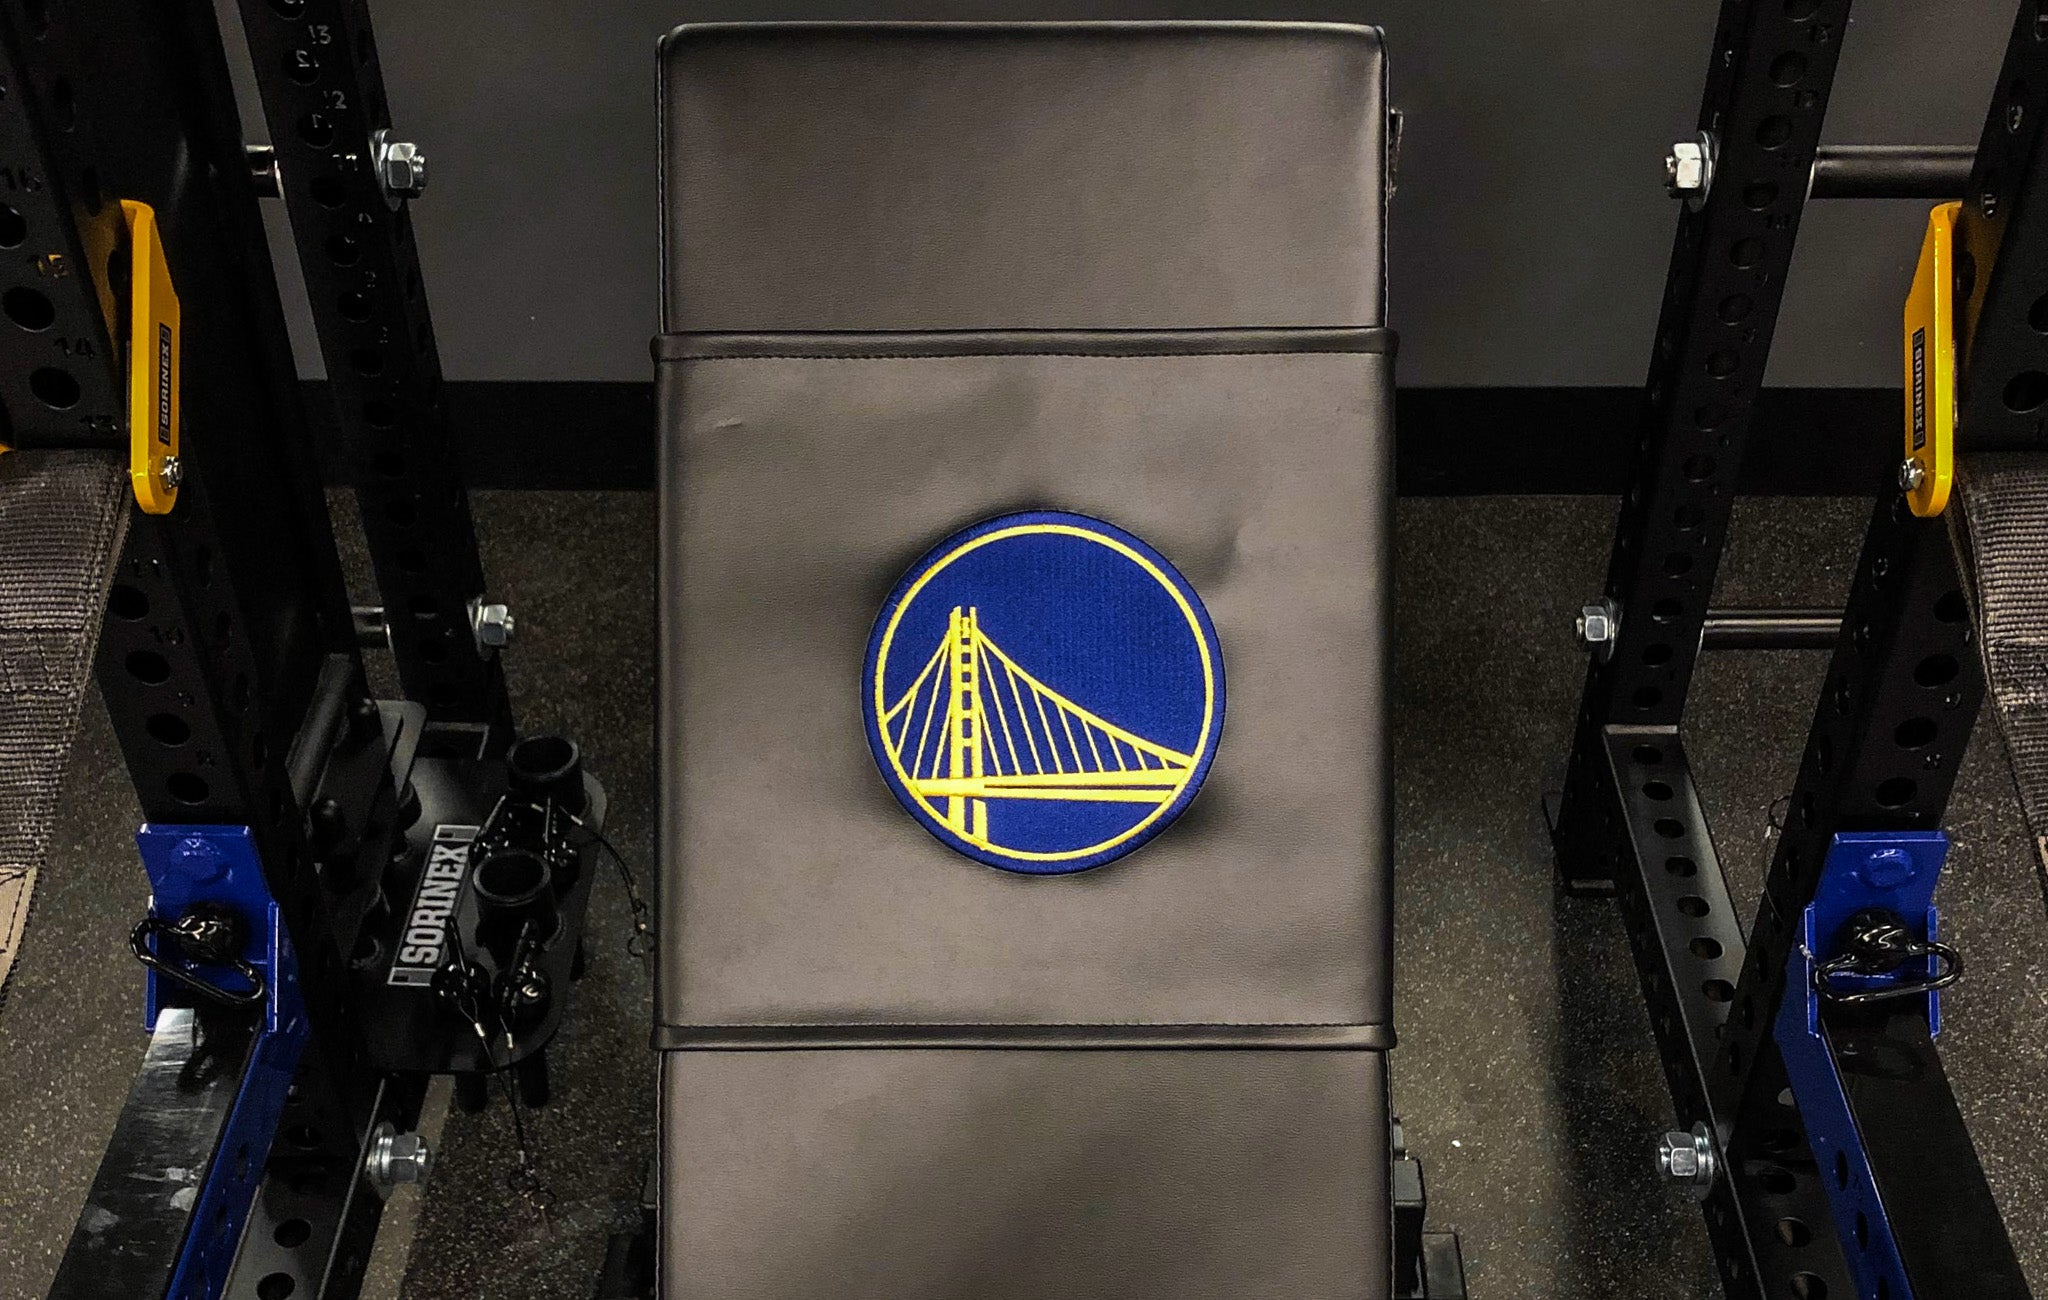 Golden State Warriors Strength training